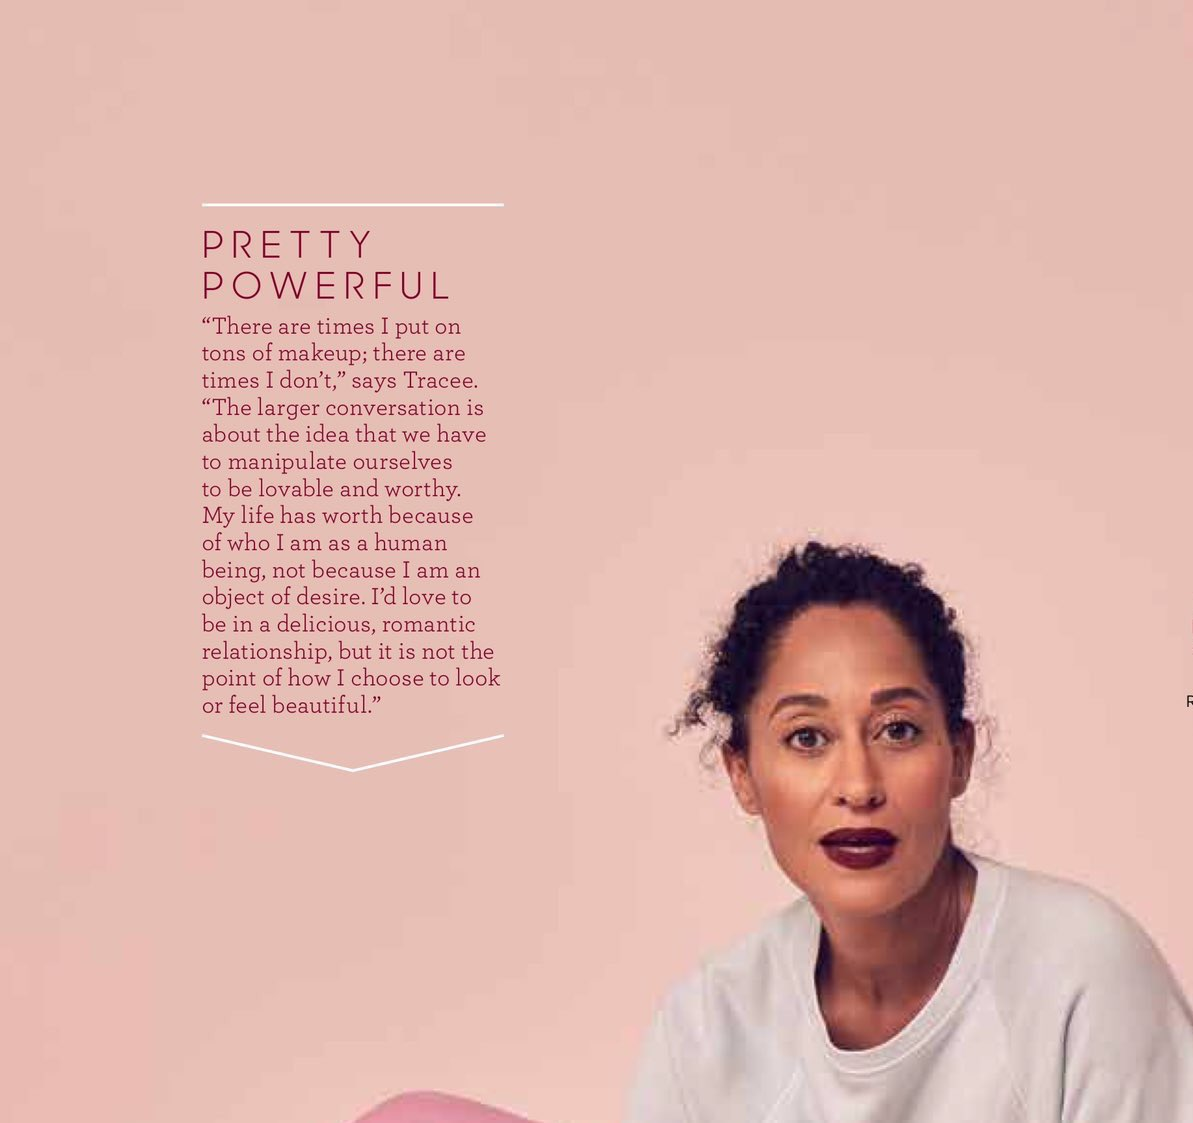 &quot;My life has worth because of who I am as a human being, not because I am an object of desire&quot; Thank U @TraceeEllisRoss #powerful <br>http://pic.twitter.com/xmODgnGpll